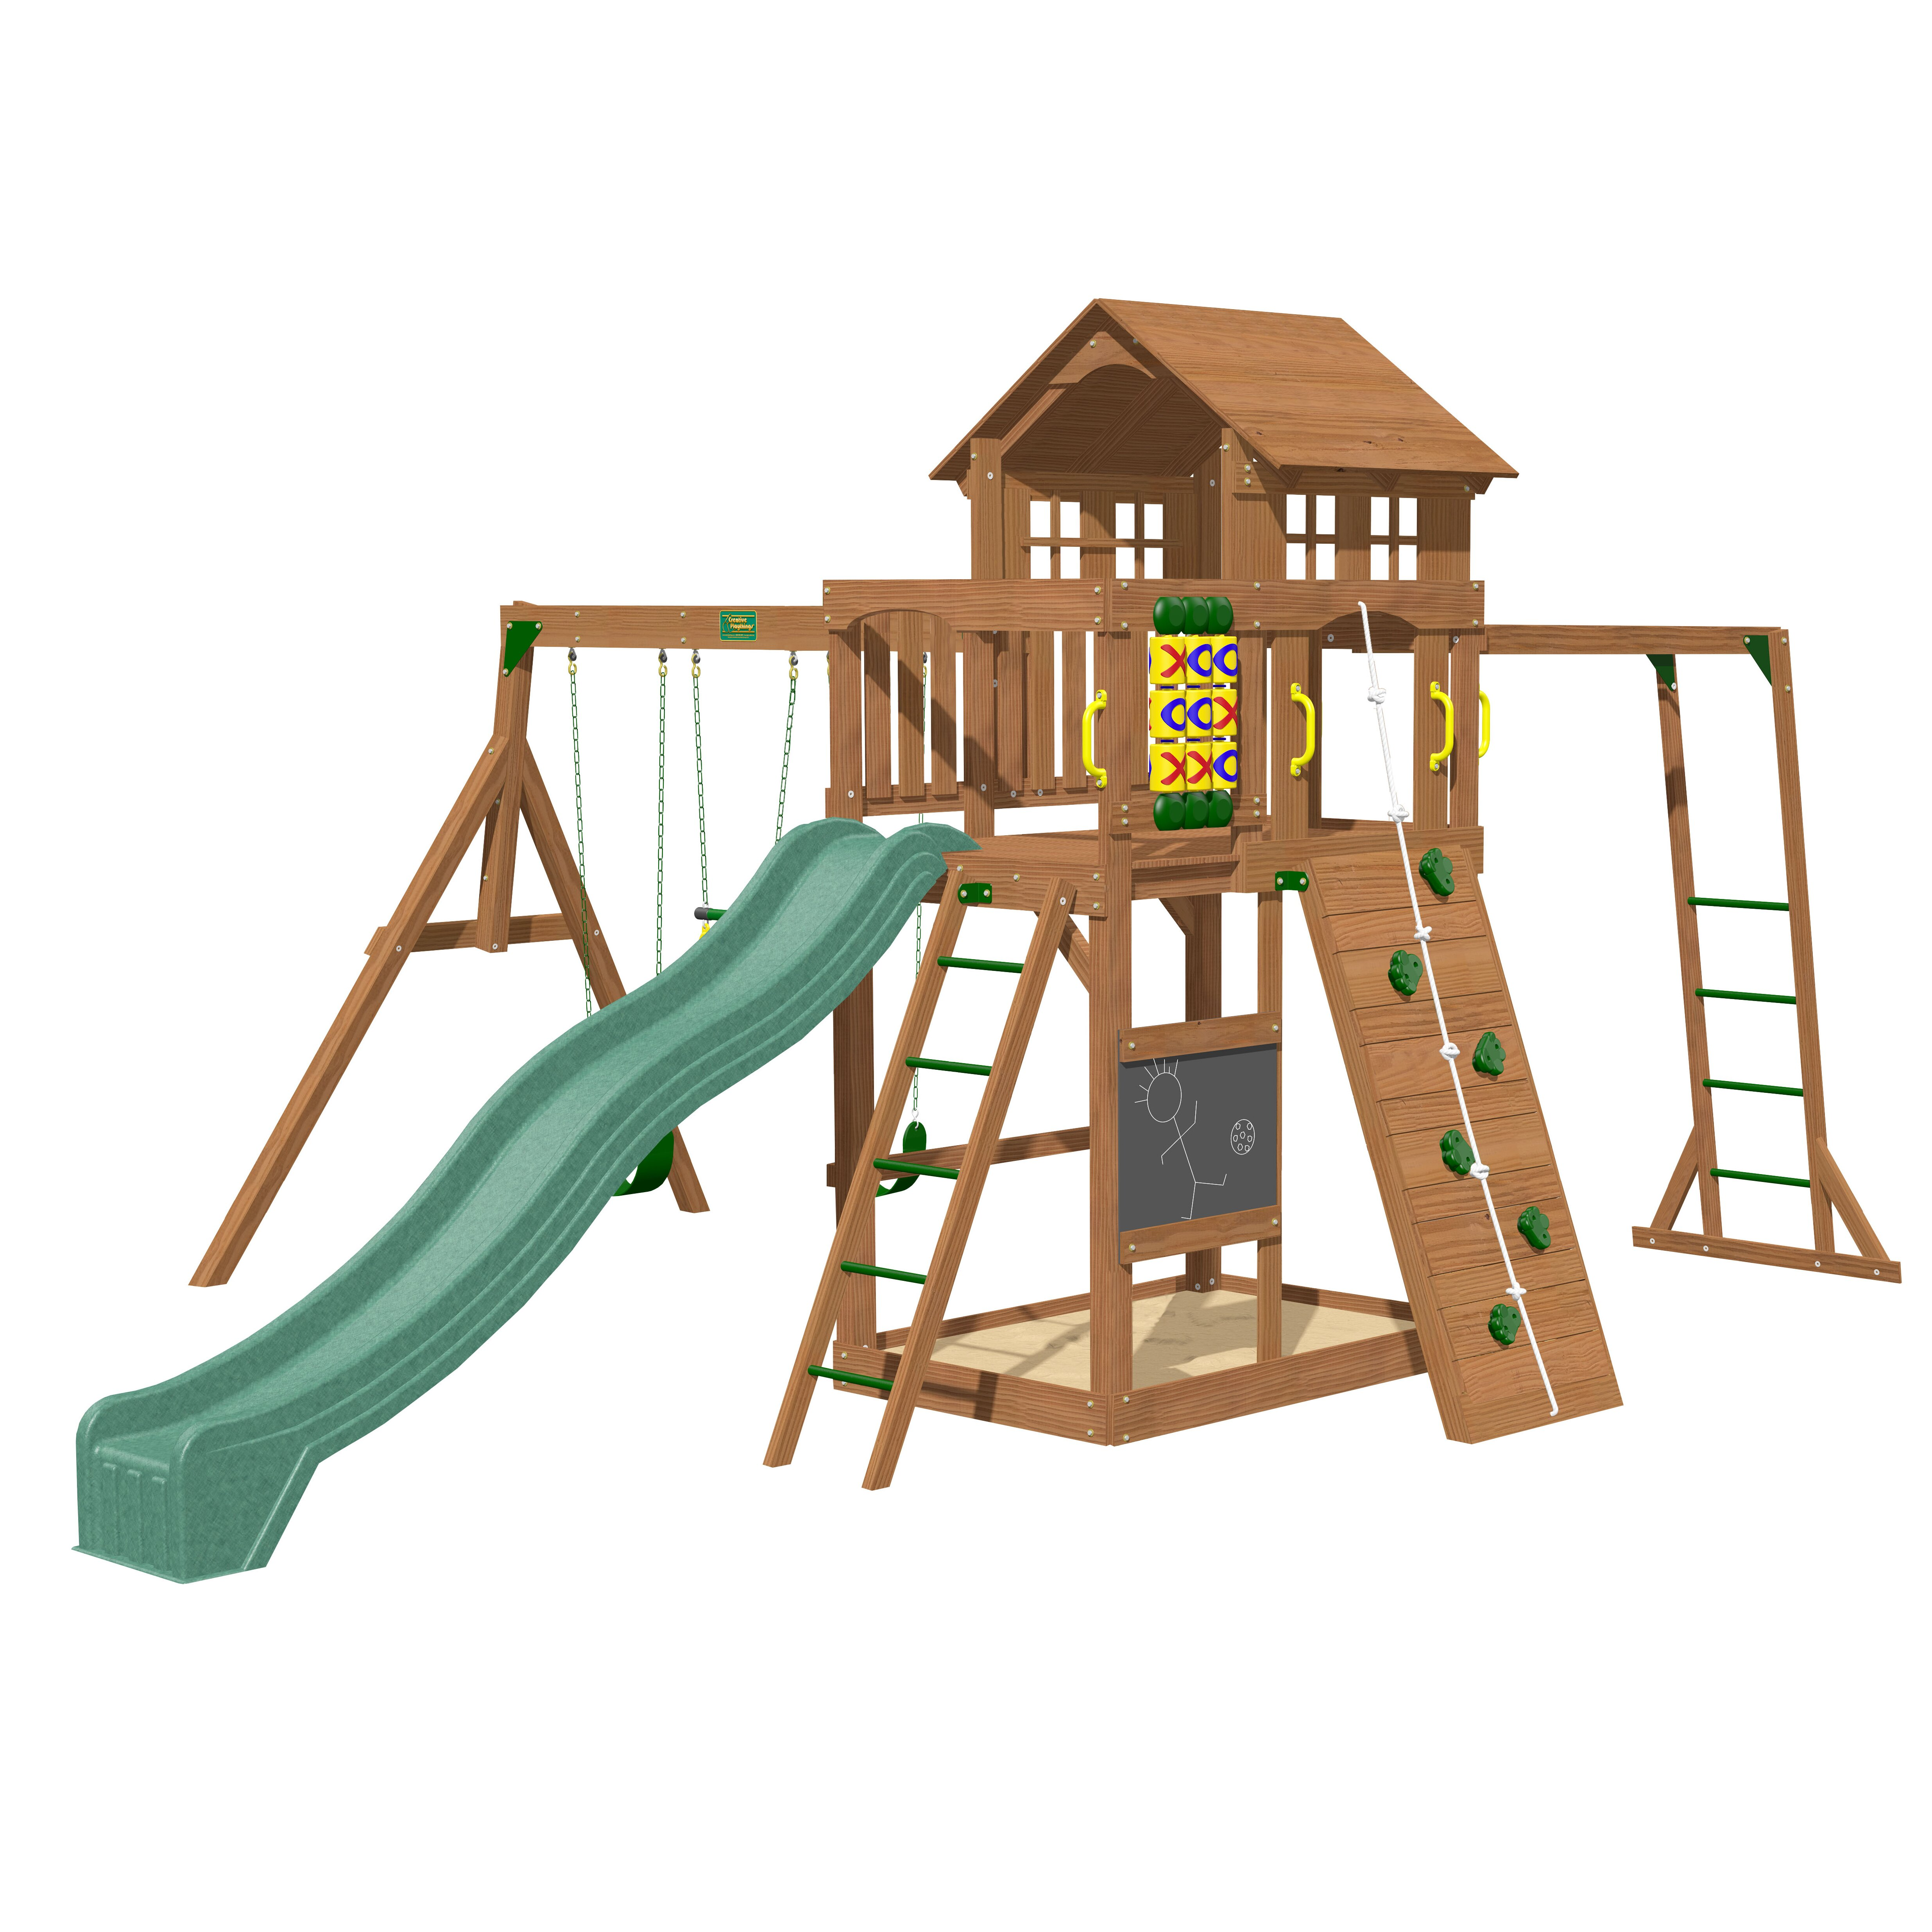 creative playthings cypress wooden swing set reviews. Black Bedroom Furniture Sets. Home Design Ideas